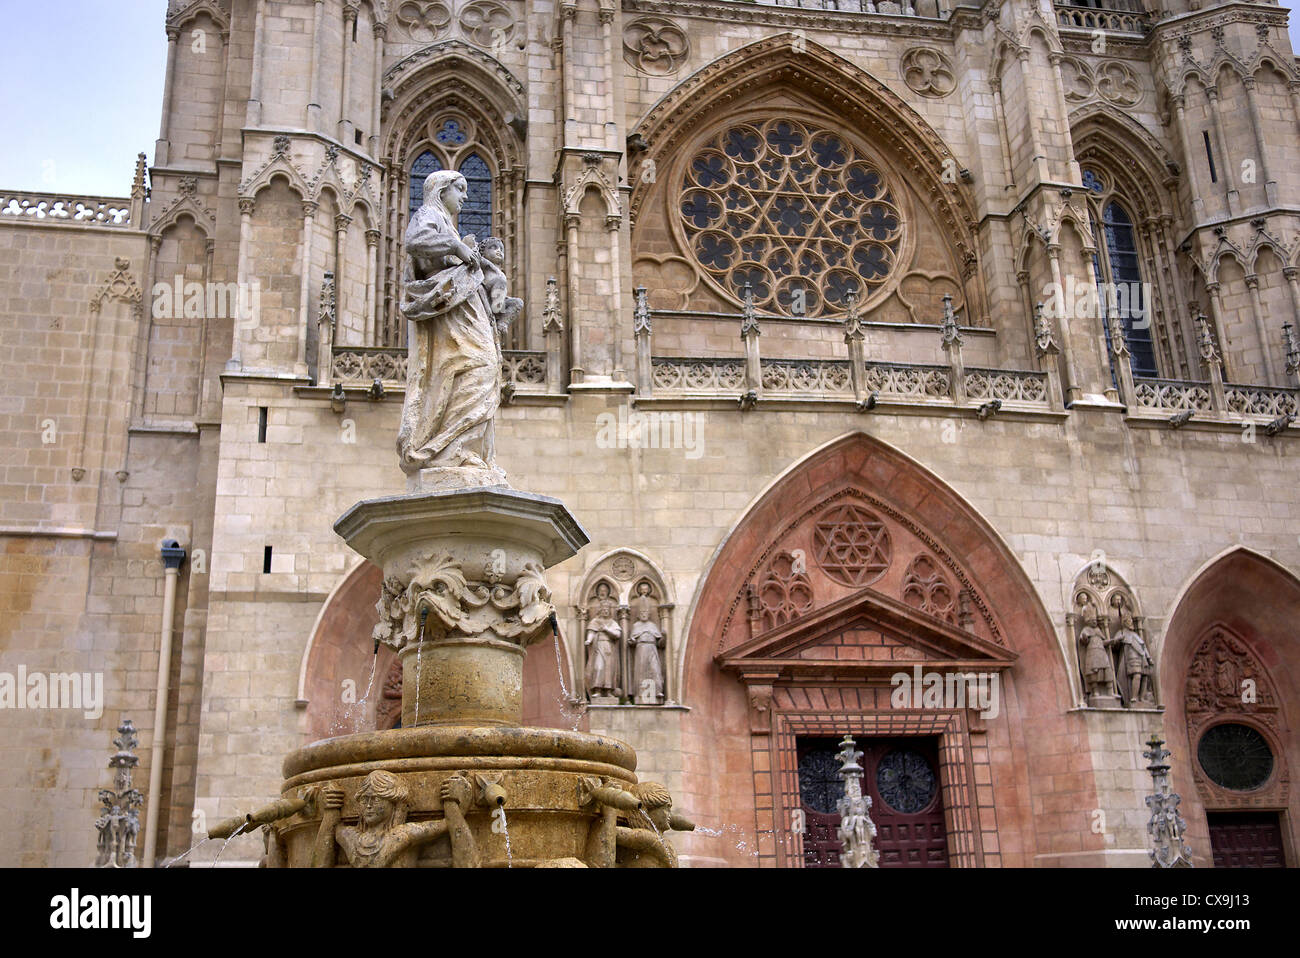 The Cathedral in Burgos, Spain. - Stock Image